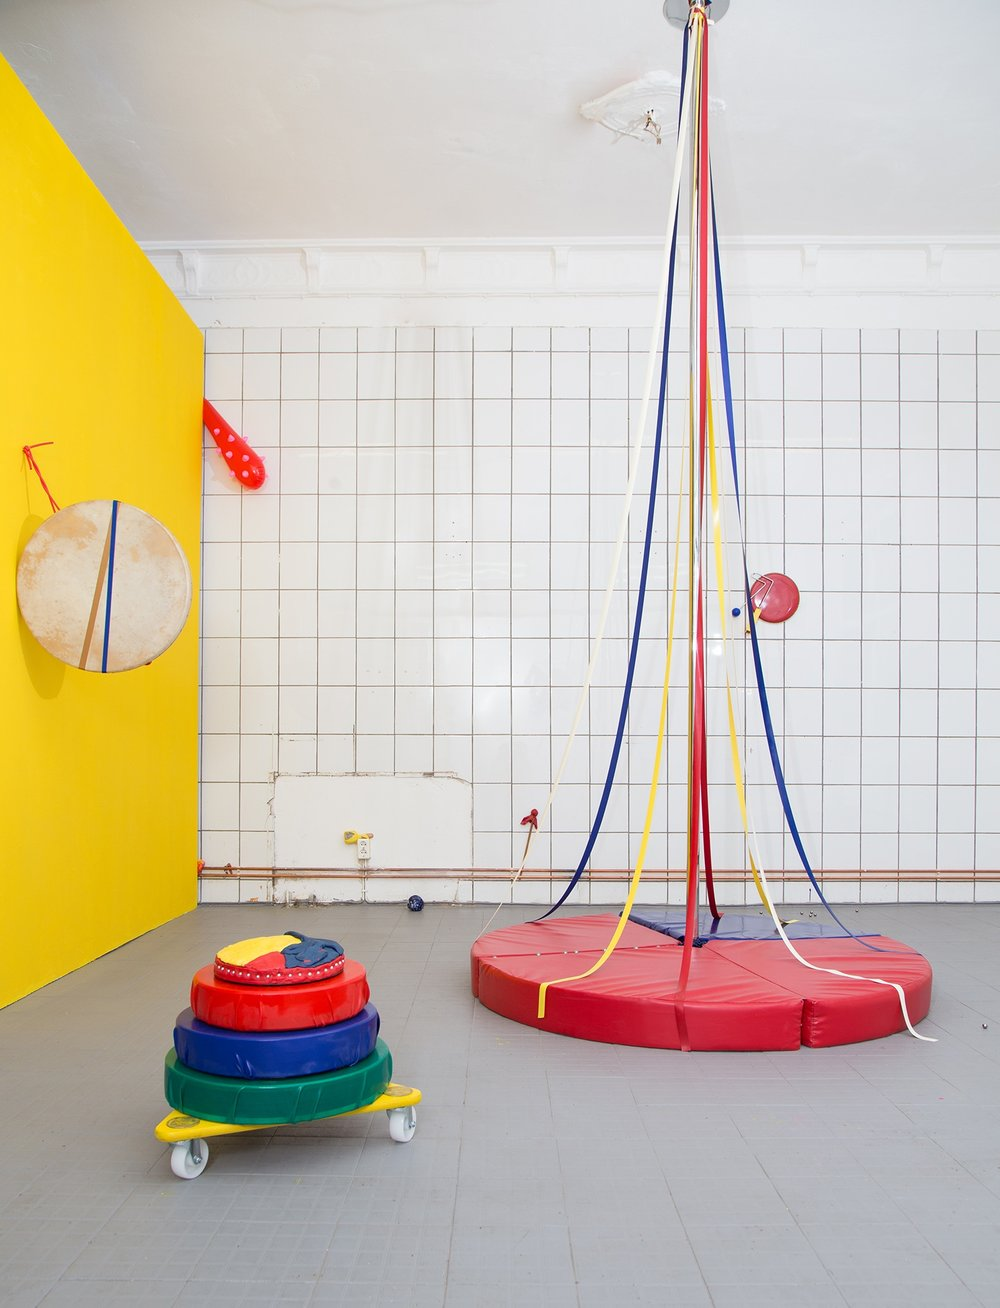 Four on the Floor (Work Work Work Work)    Installation view at HPFA Berlin:  Materials (not including mobile sculpture): Vinyl crash mat, pole dancing pole, latex ribbons and rope, liquid and sheet material latex, ball bearings, ceramics, felt and wooden shakers and beaters, vinyl blow up toy, hand drum, gouache and acrylic paint, glitter nail polish, tape, satin ribbons, vanilla cake, yellow food colouring, silver sugar pearls, fondant, yellow wall.  Dimensions: height shown - 3.5 metres, width variable